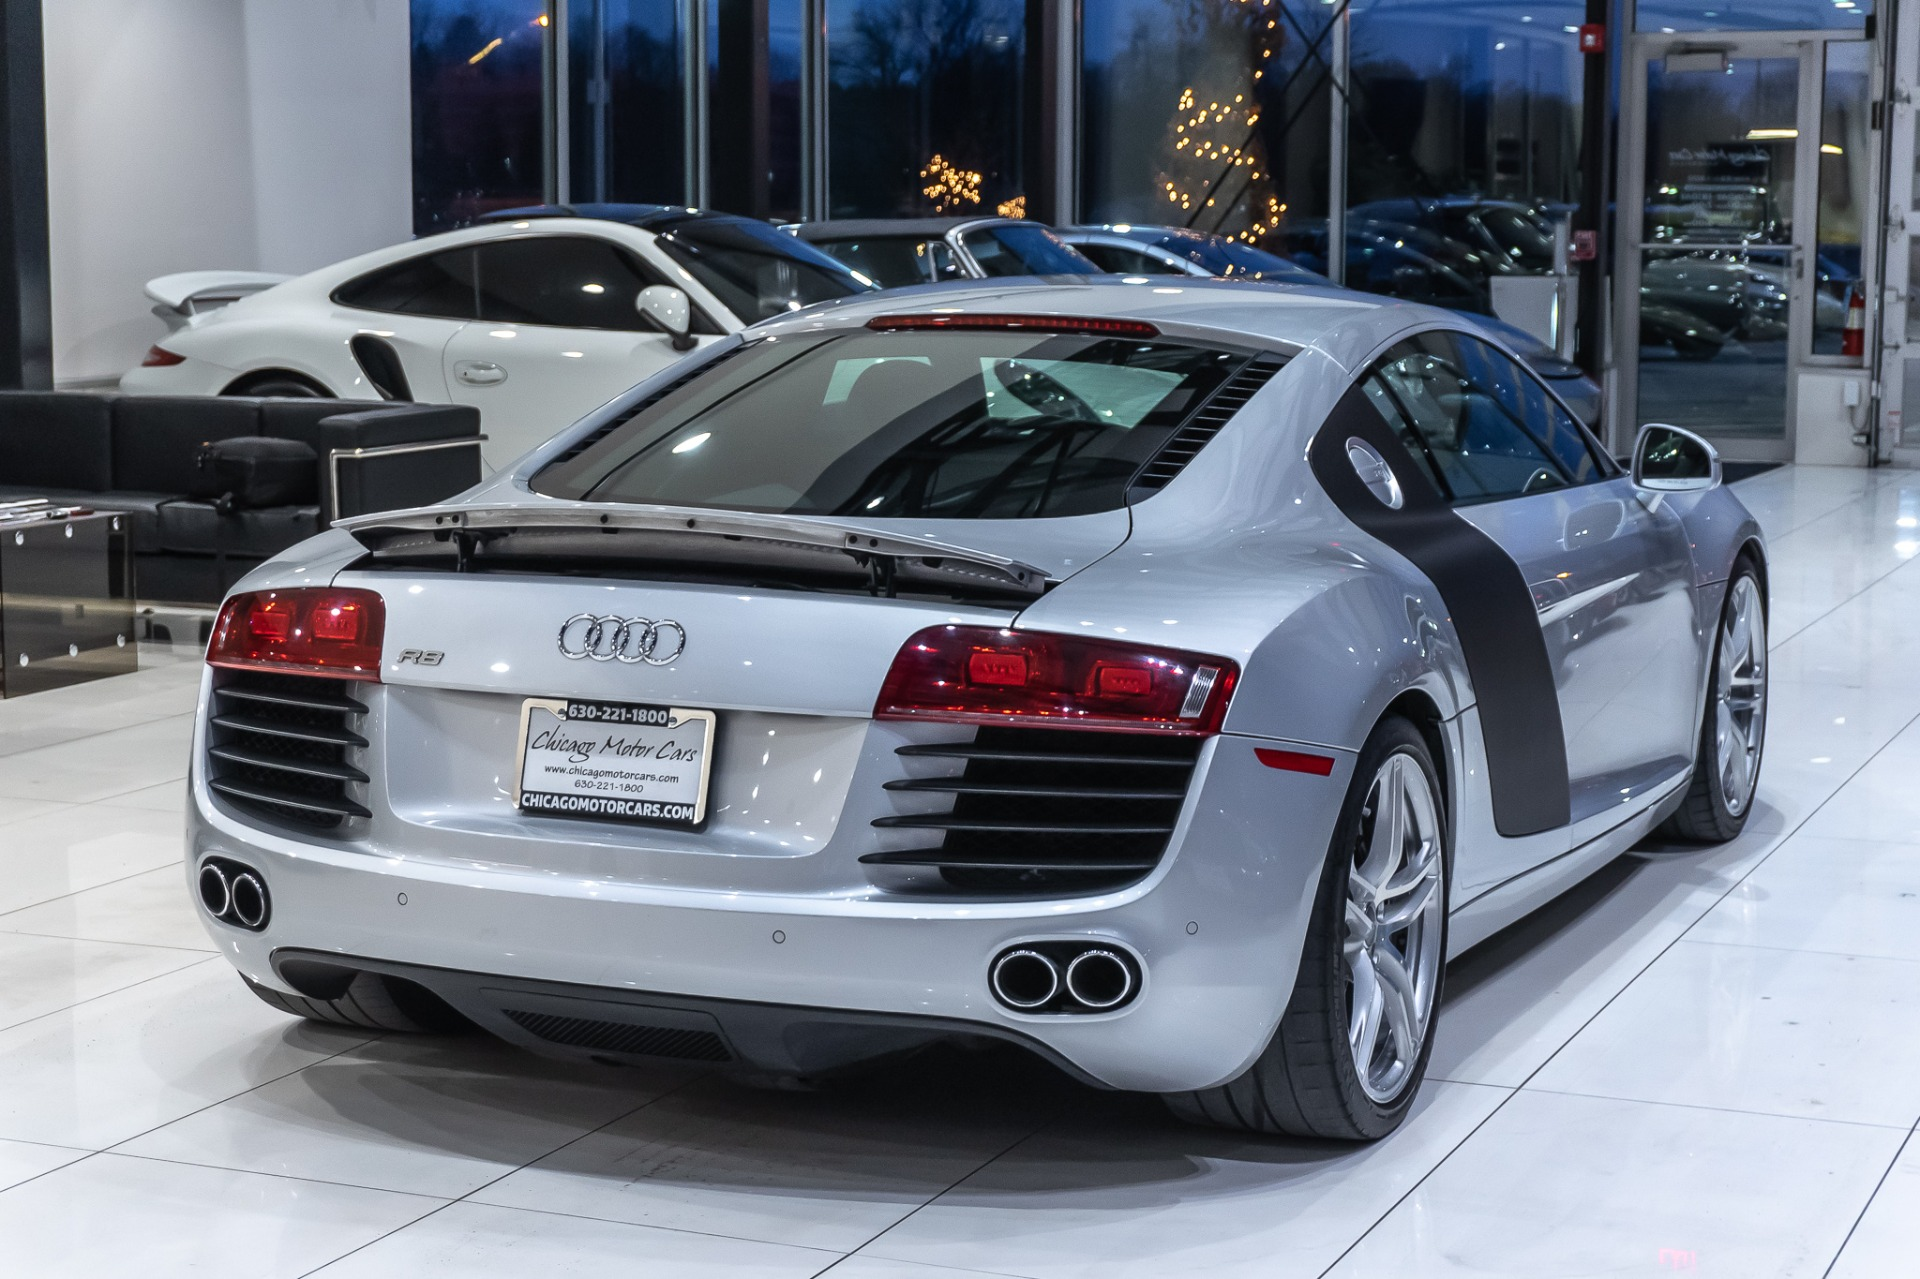 Used-2008-Audi-R8-42L-quattro-Coupe-CONVENIENCE-PACK-BANG---OLUFSEN-AUDIO